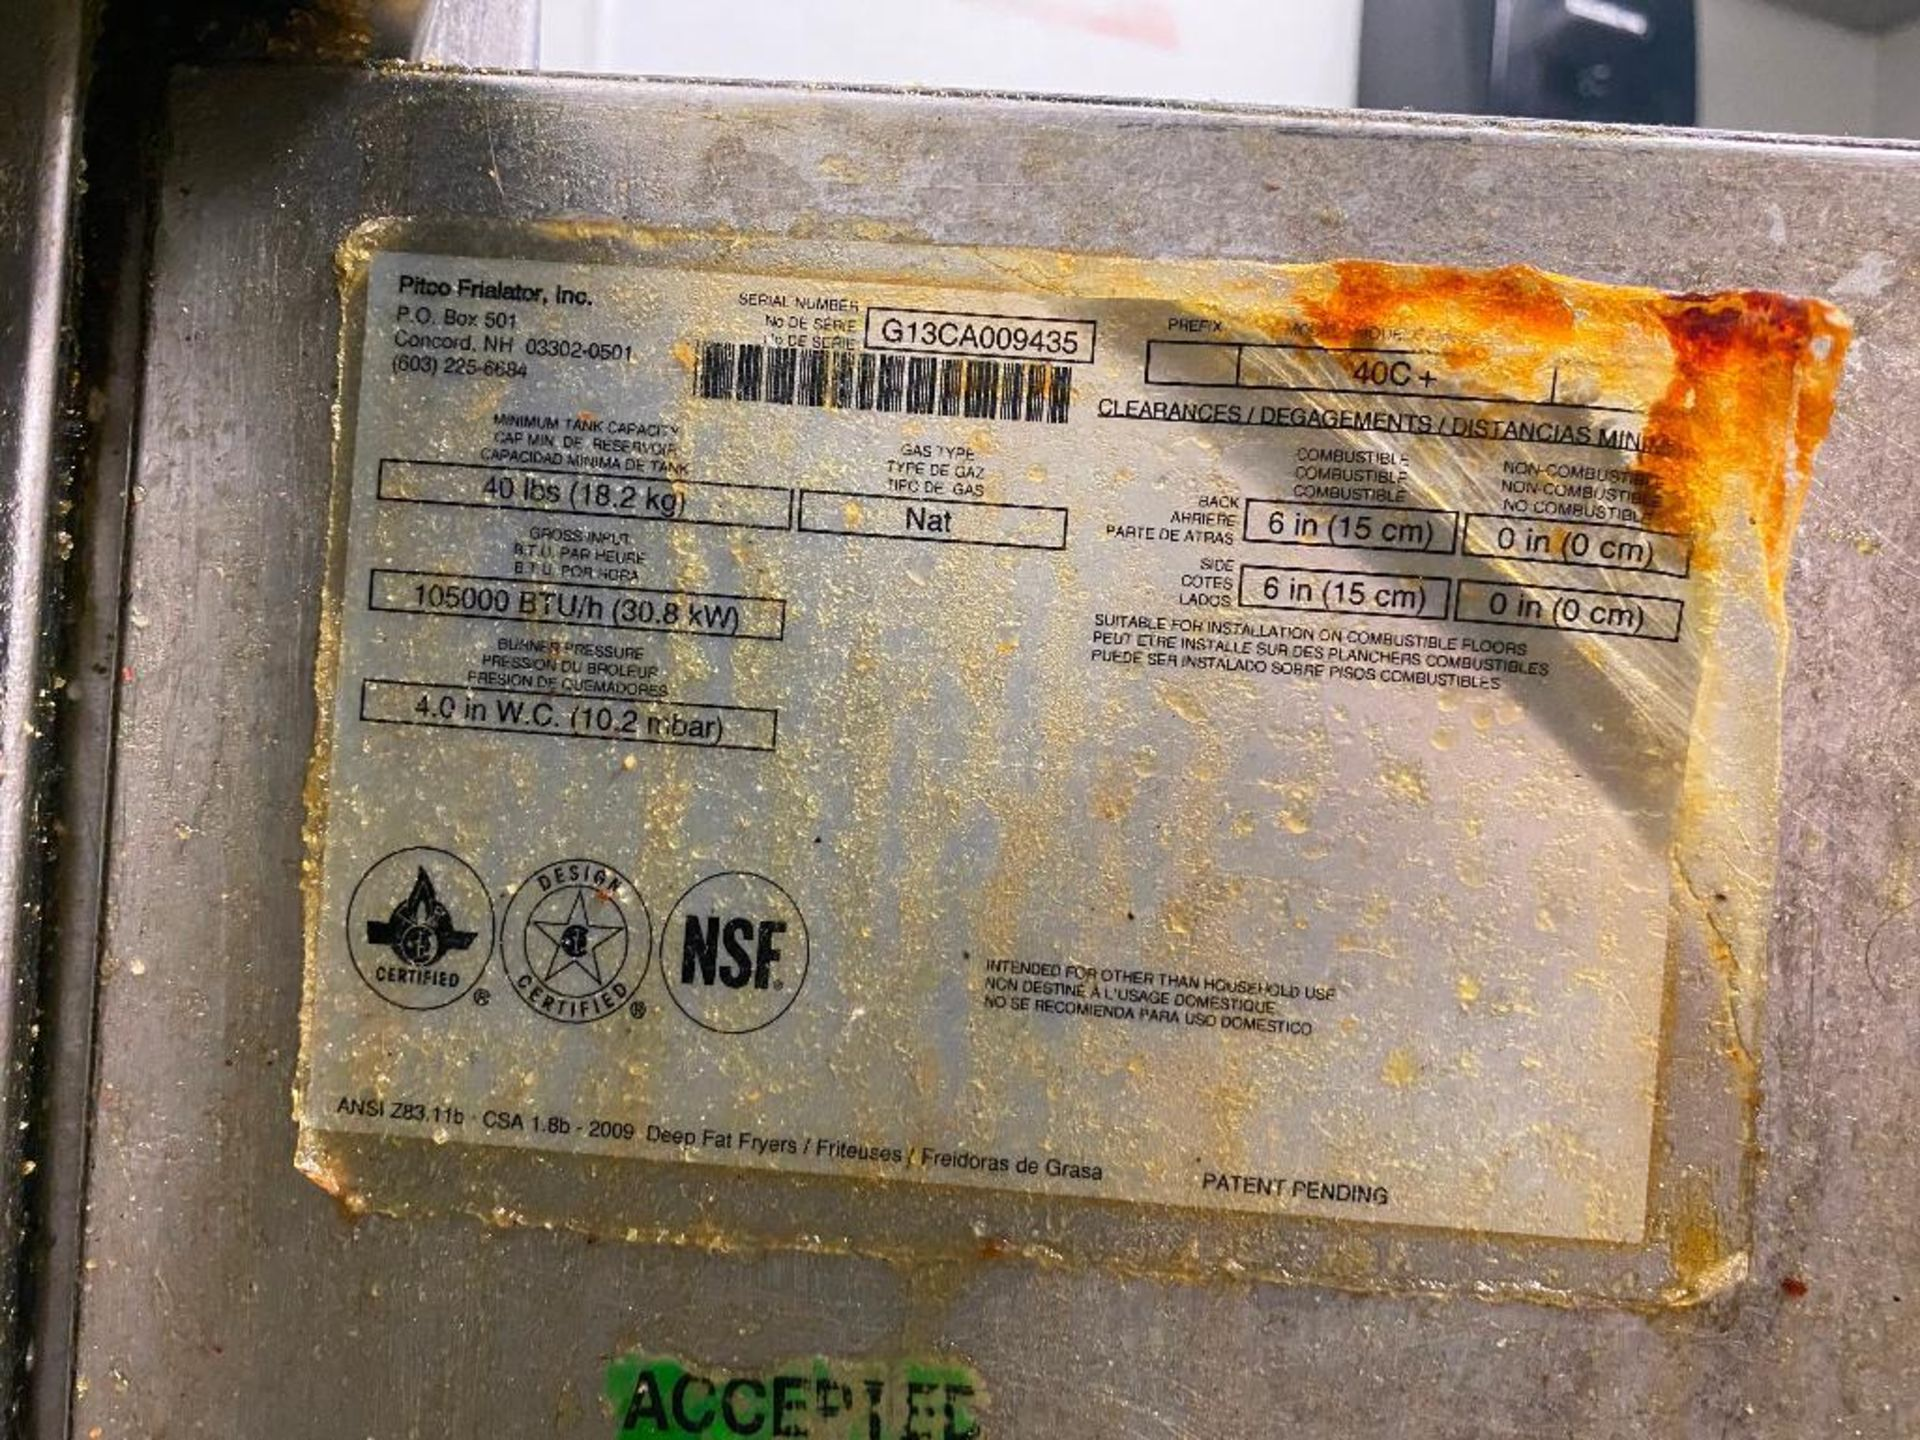 PITCO 40C+ FLOOR TUBE FIRED NATURAL GAS FRYER - NOTE: REQUIRES DISCONNECT,PLEASE INSPECT - Image 4 of 4